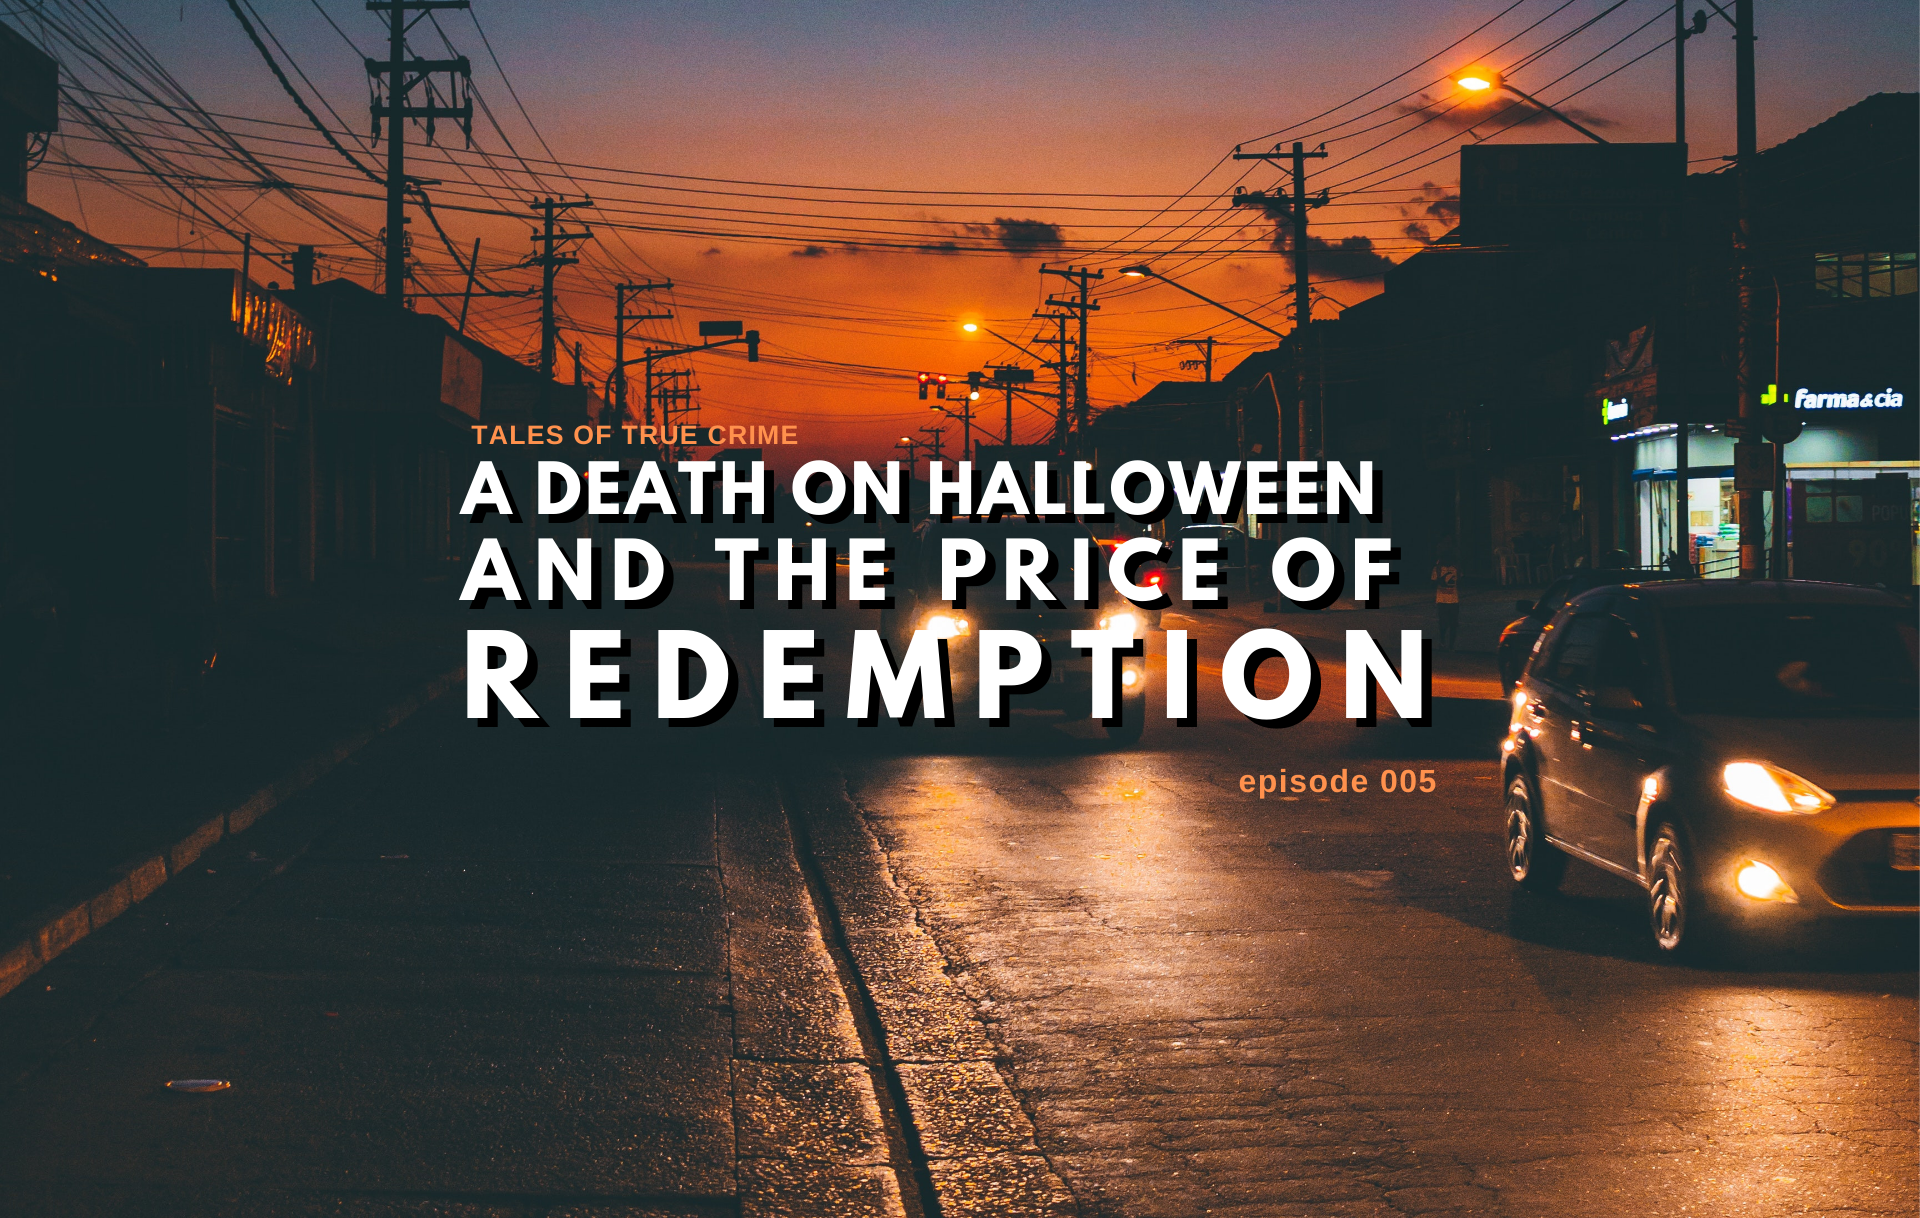 How Many Death In Halloween 2020 Tales of True Crime, episode 6: A Death on Halloween and the Price